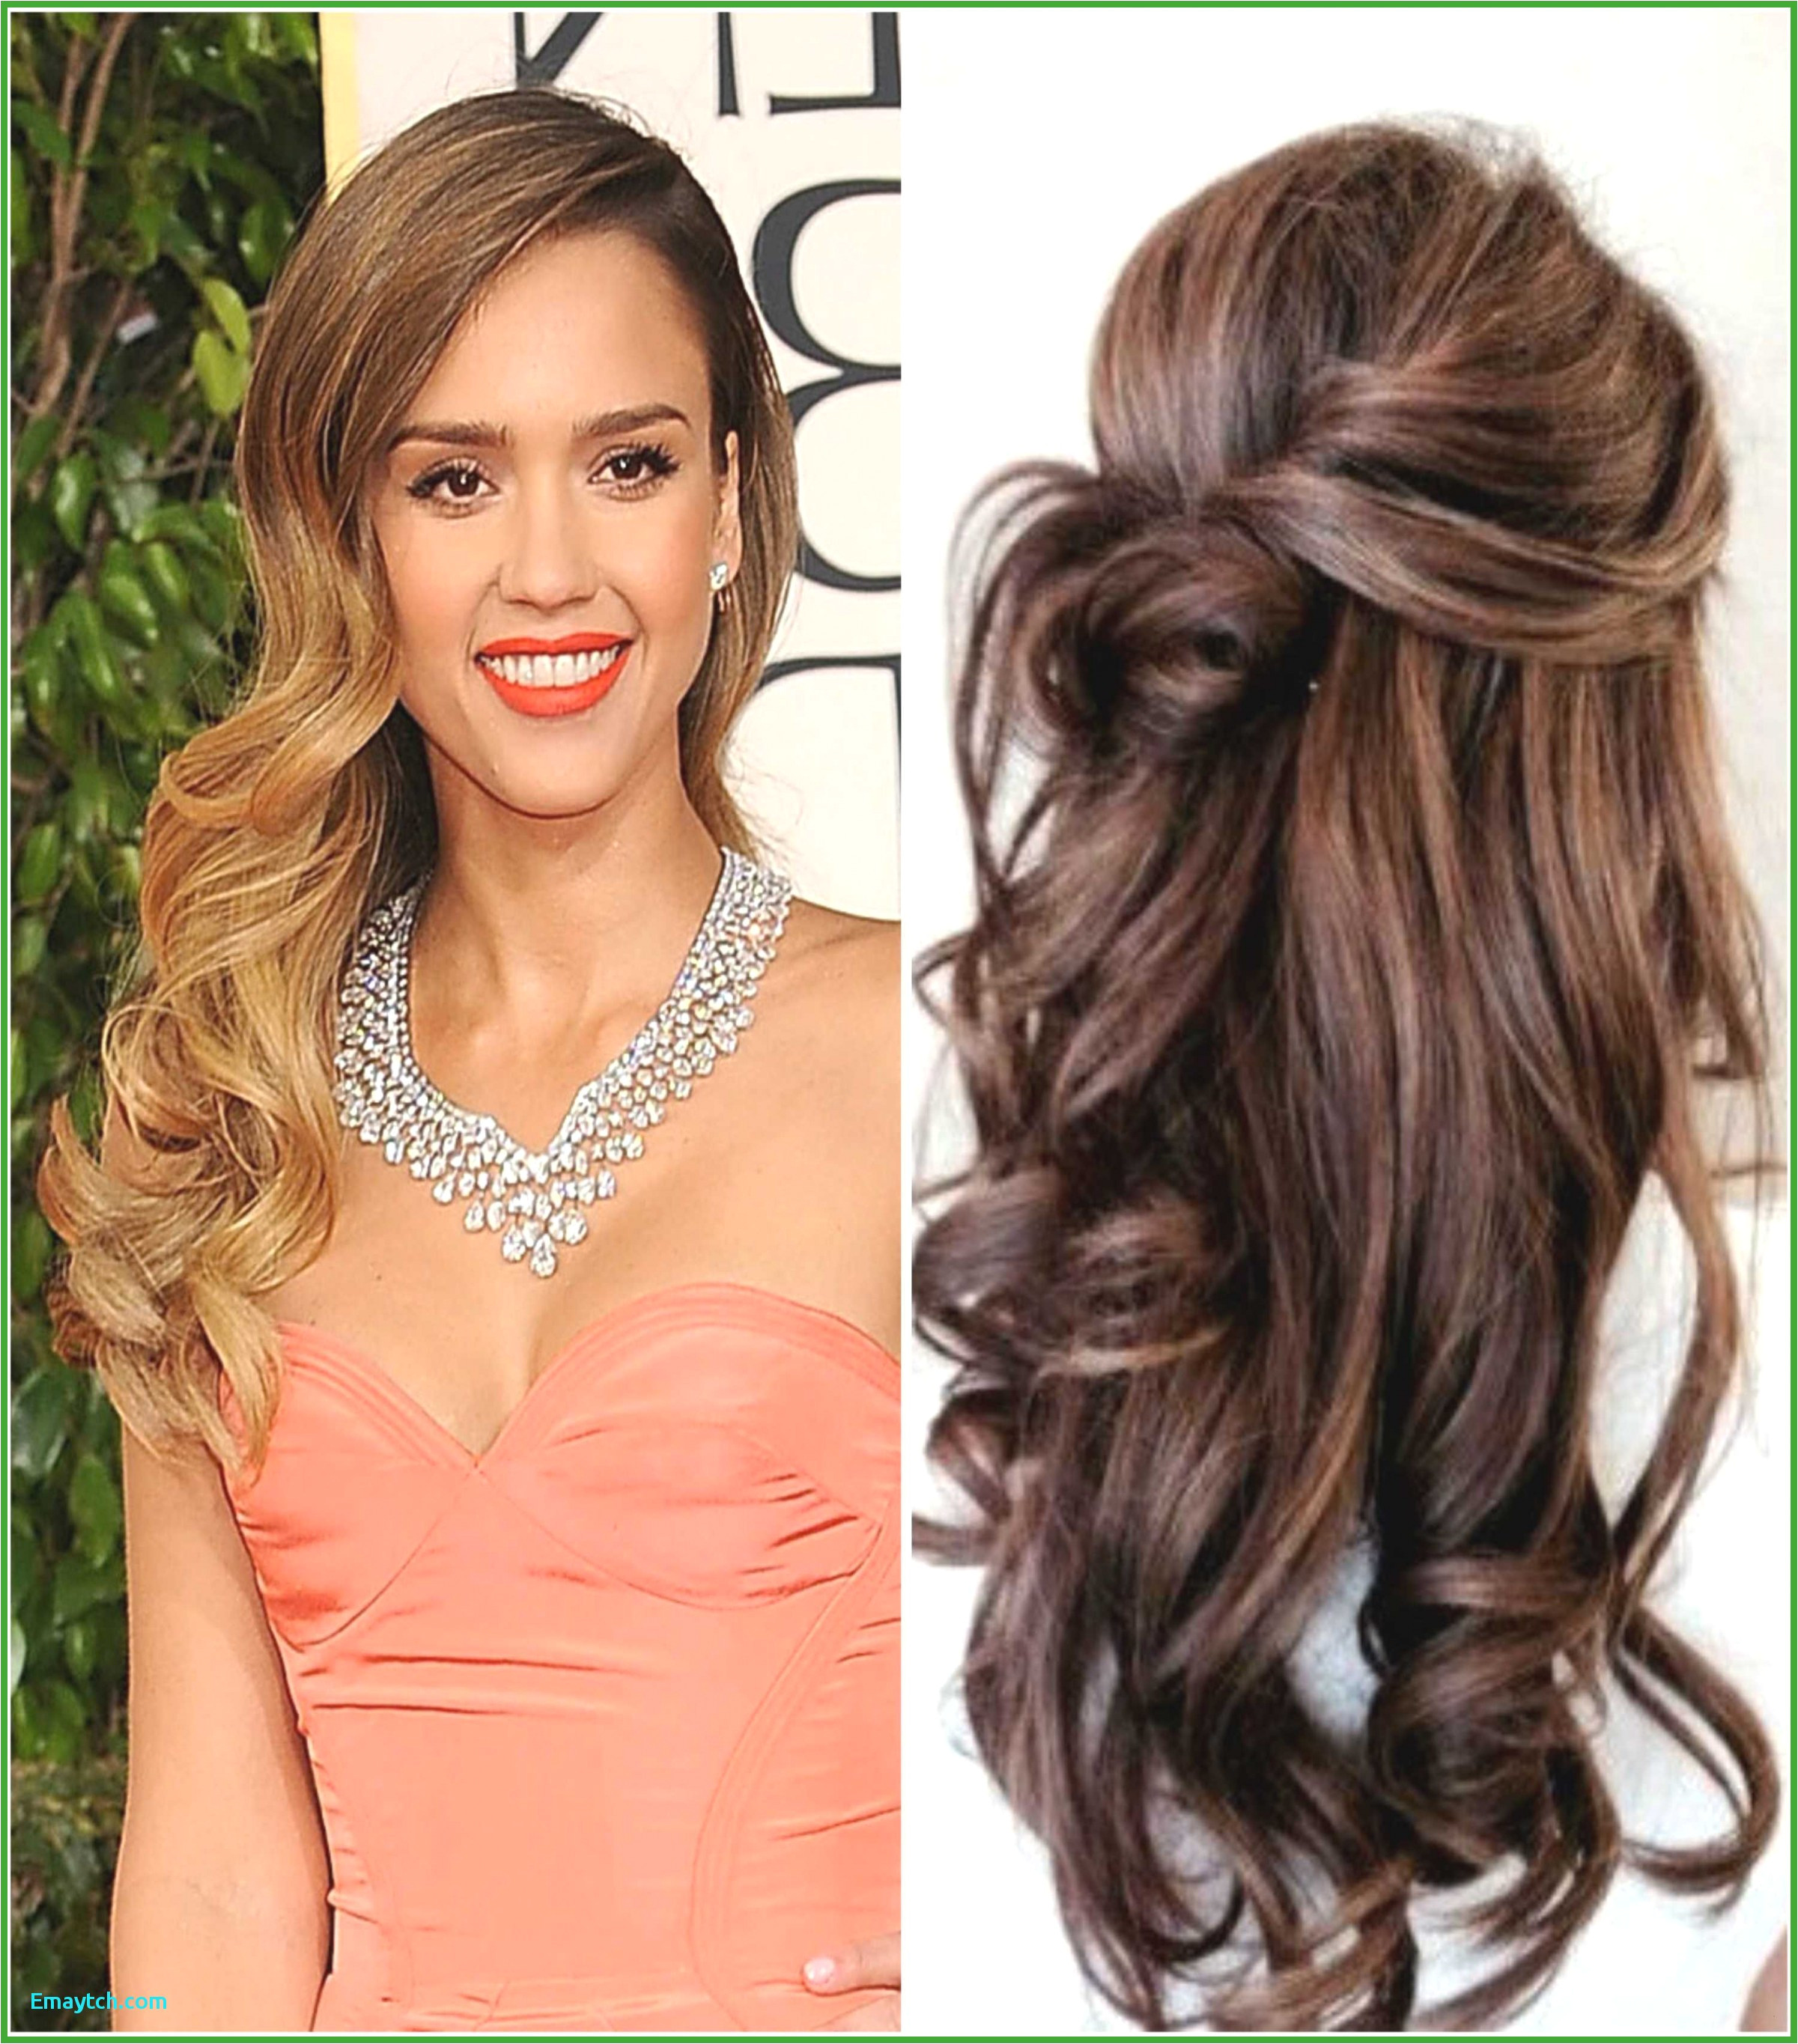 29 Cute Easy Hairstyles for Short Hair Awesome Layered Short Hairstyles Short Haircut for Thick Hair